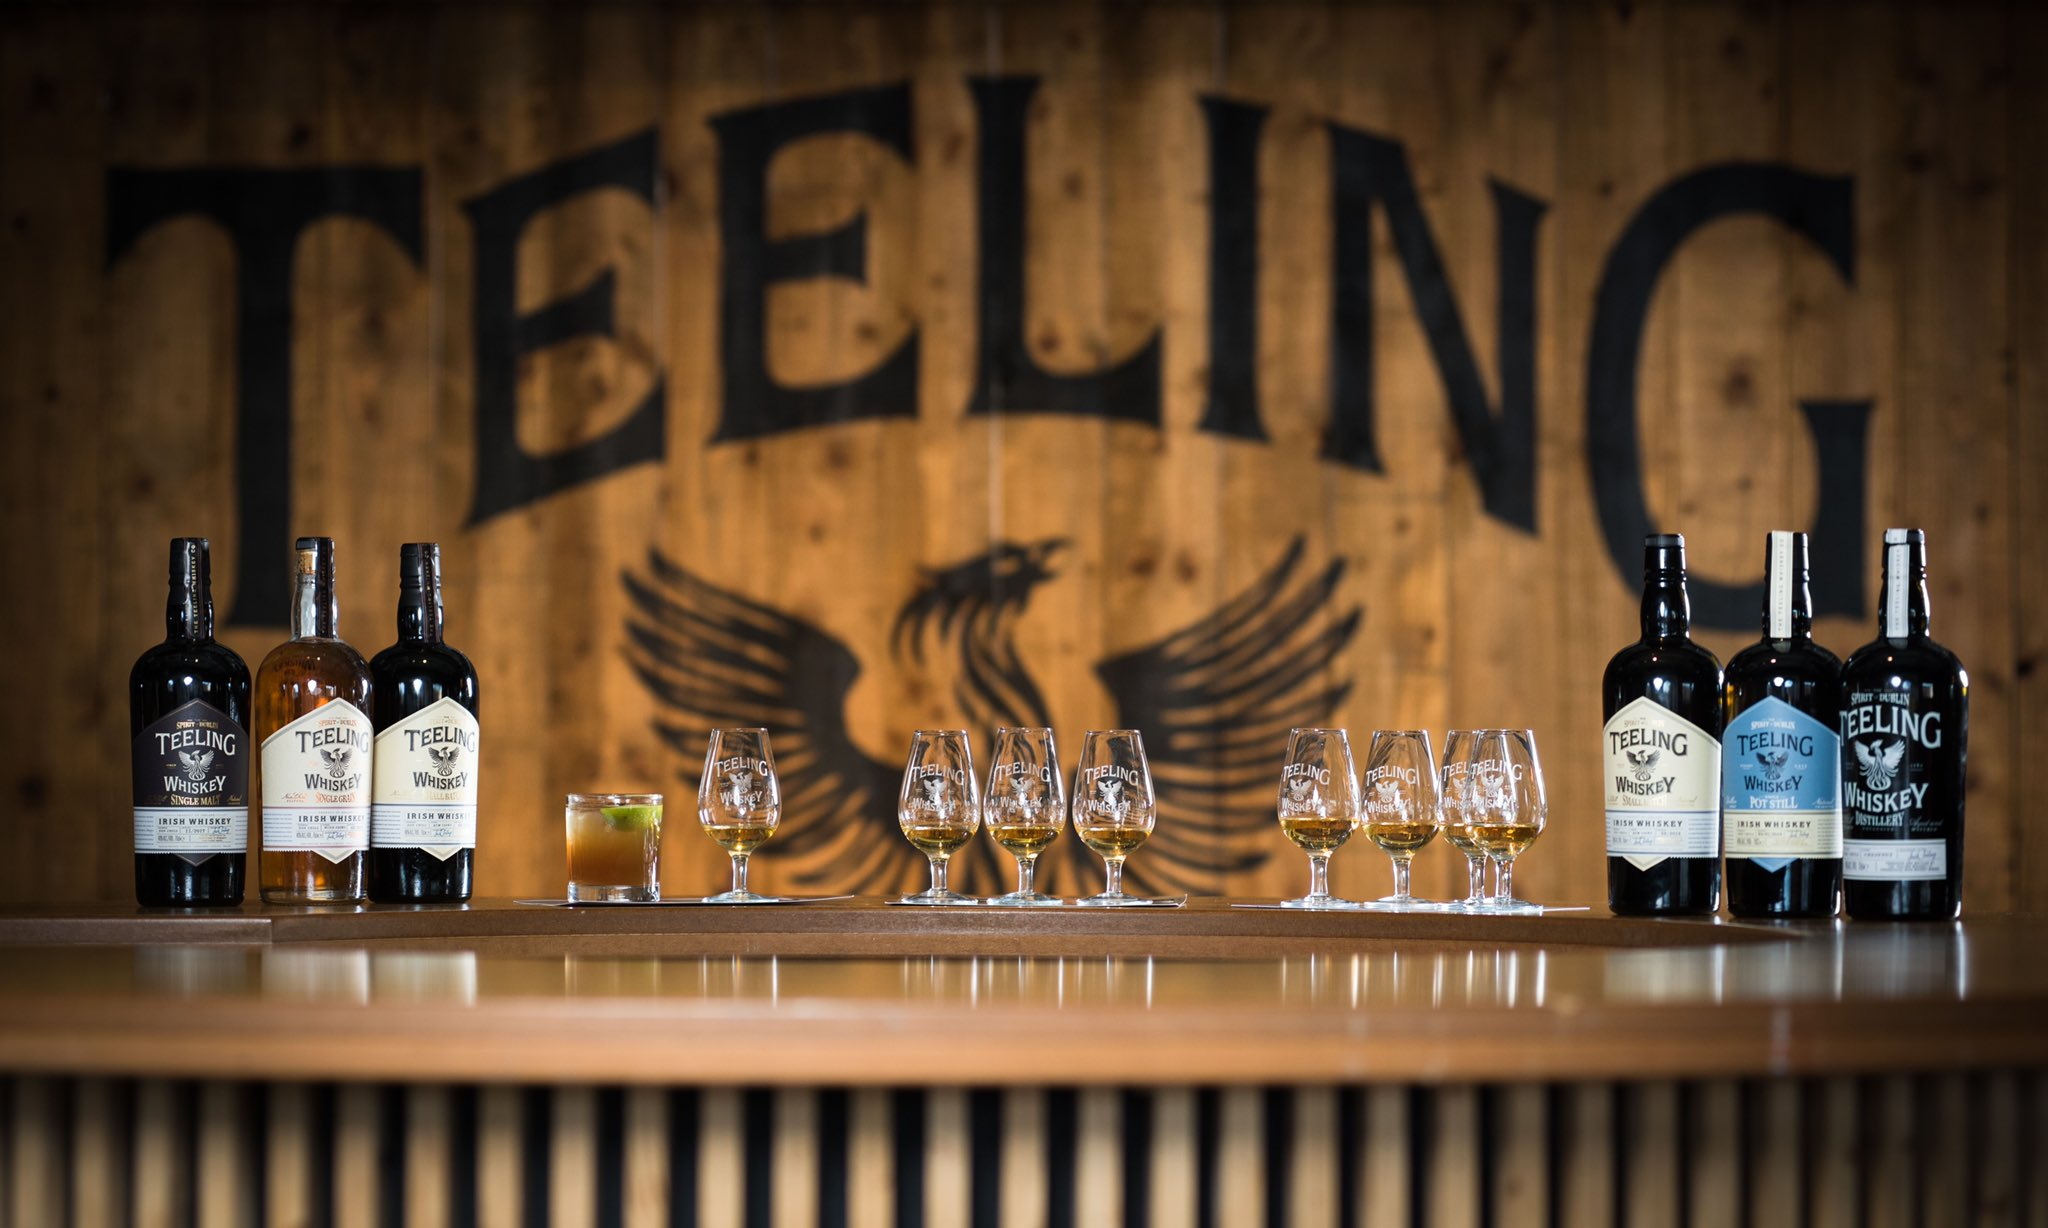 """Teeling Whiskey on Twitter: """"After 3 tough months the day has finally  arrived that we can take bookings again for our distillery tours!From the  29th of June we can welcome people back"""